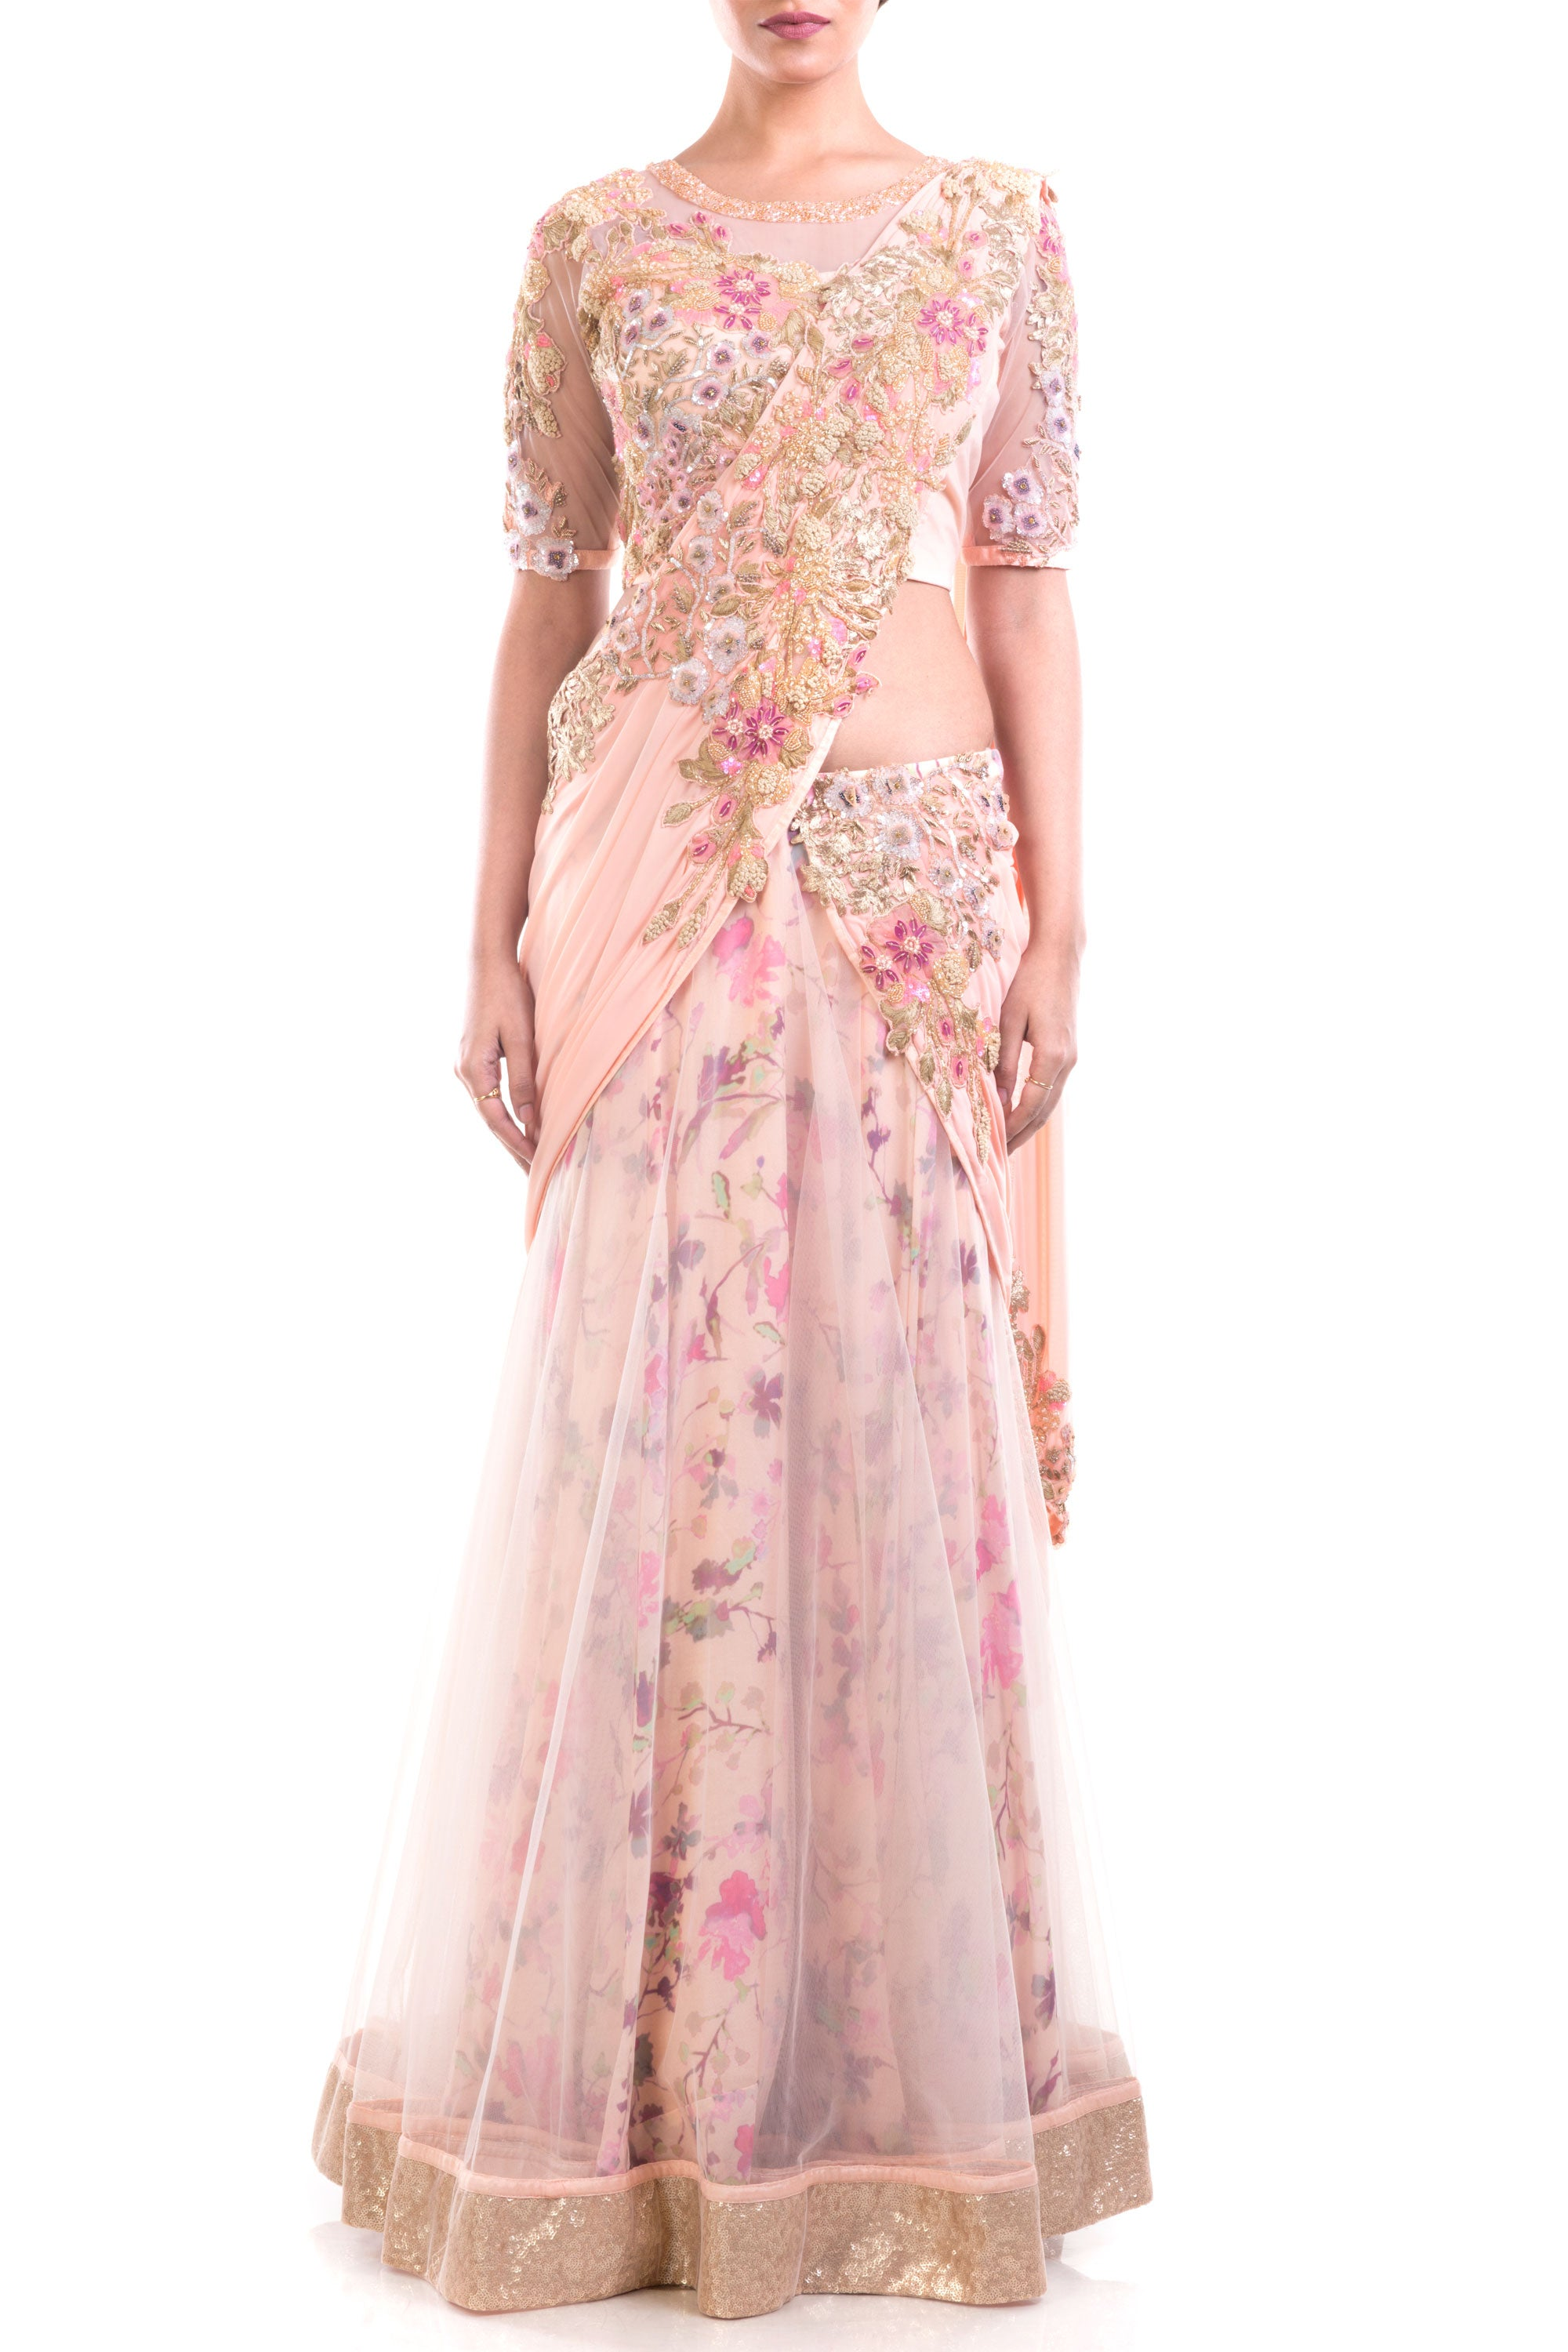 Gorgeous Draped Lehenga Gown Pattern With Print & Intricate Embroidery Detailing Front